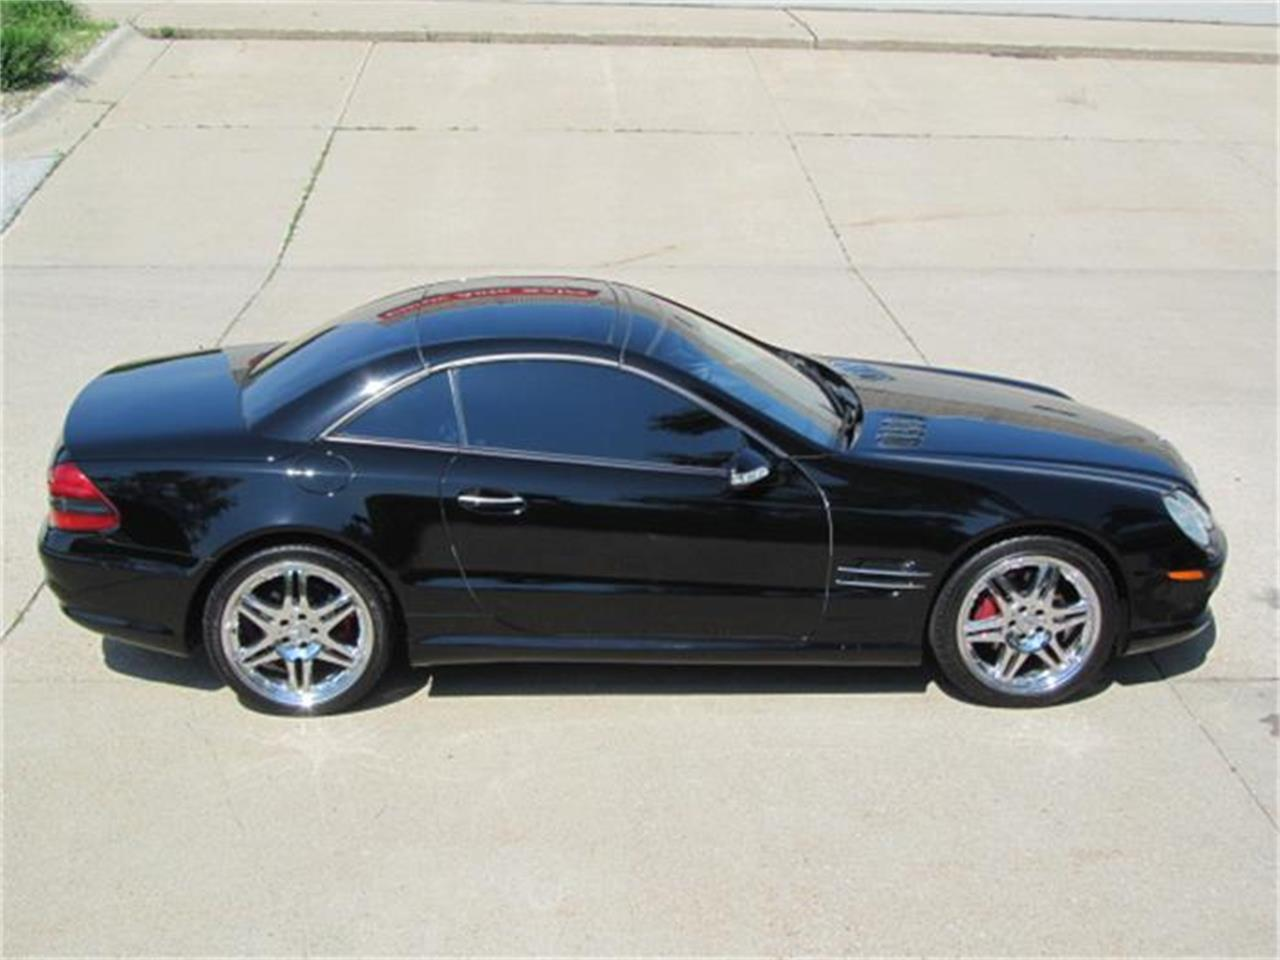 Large Picture of '03 SL500 located in Omaha Nebraska - $19,900.00 Offered by Classic Auto Sales - I54G